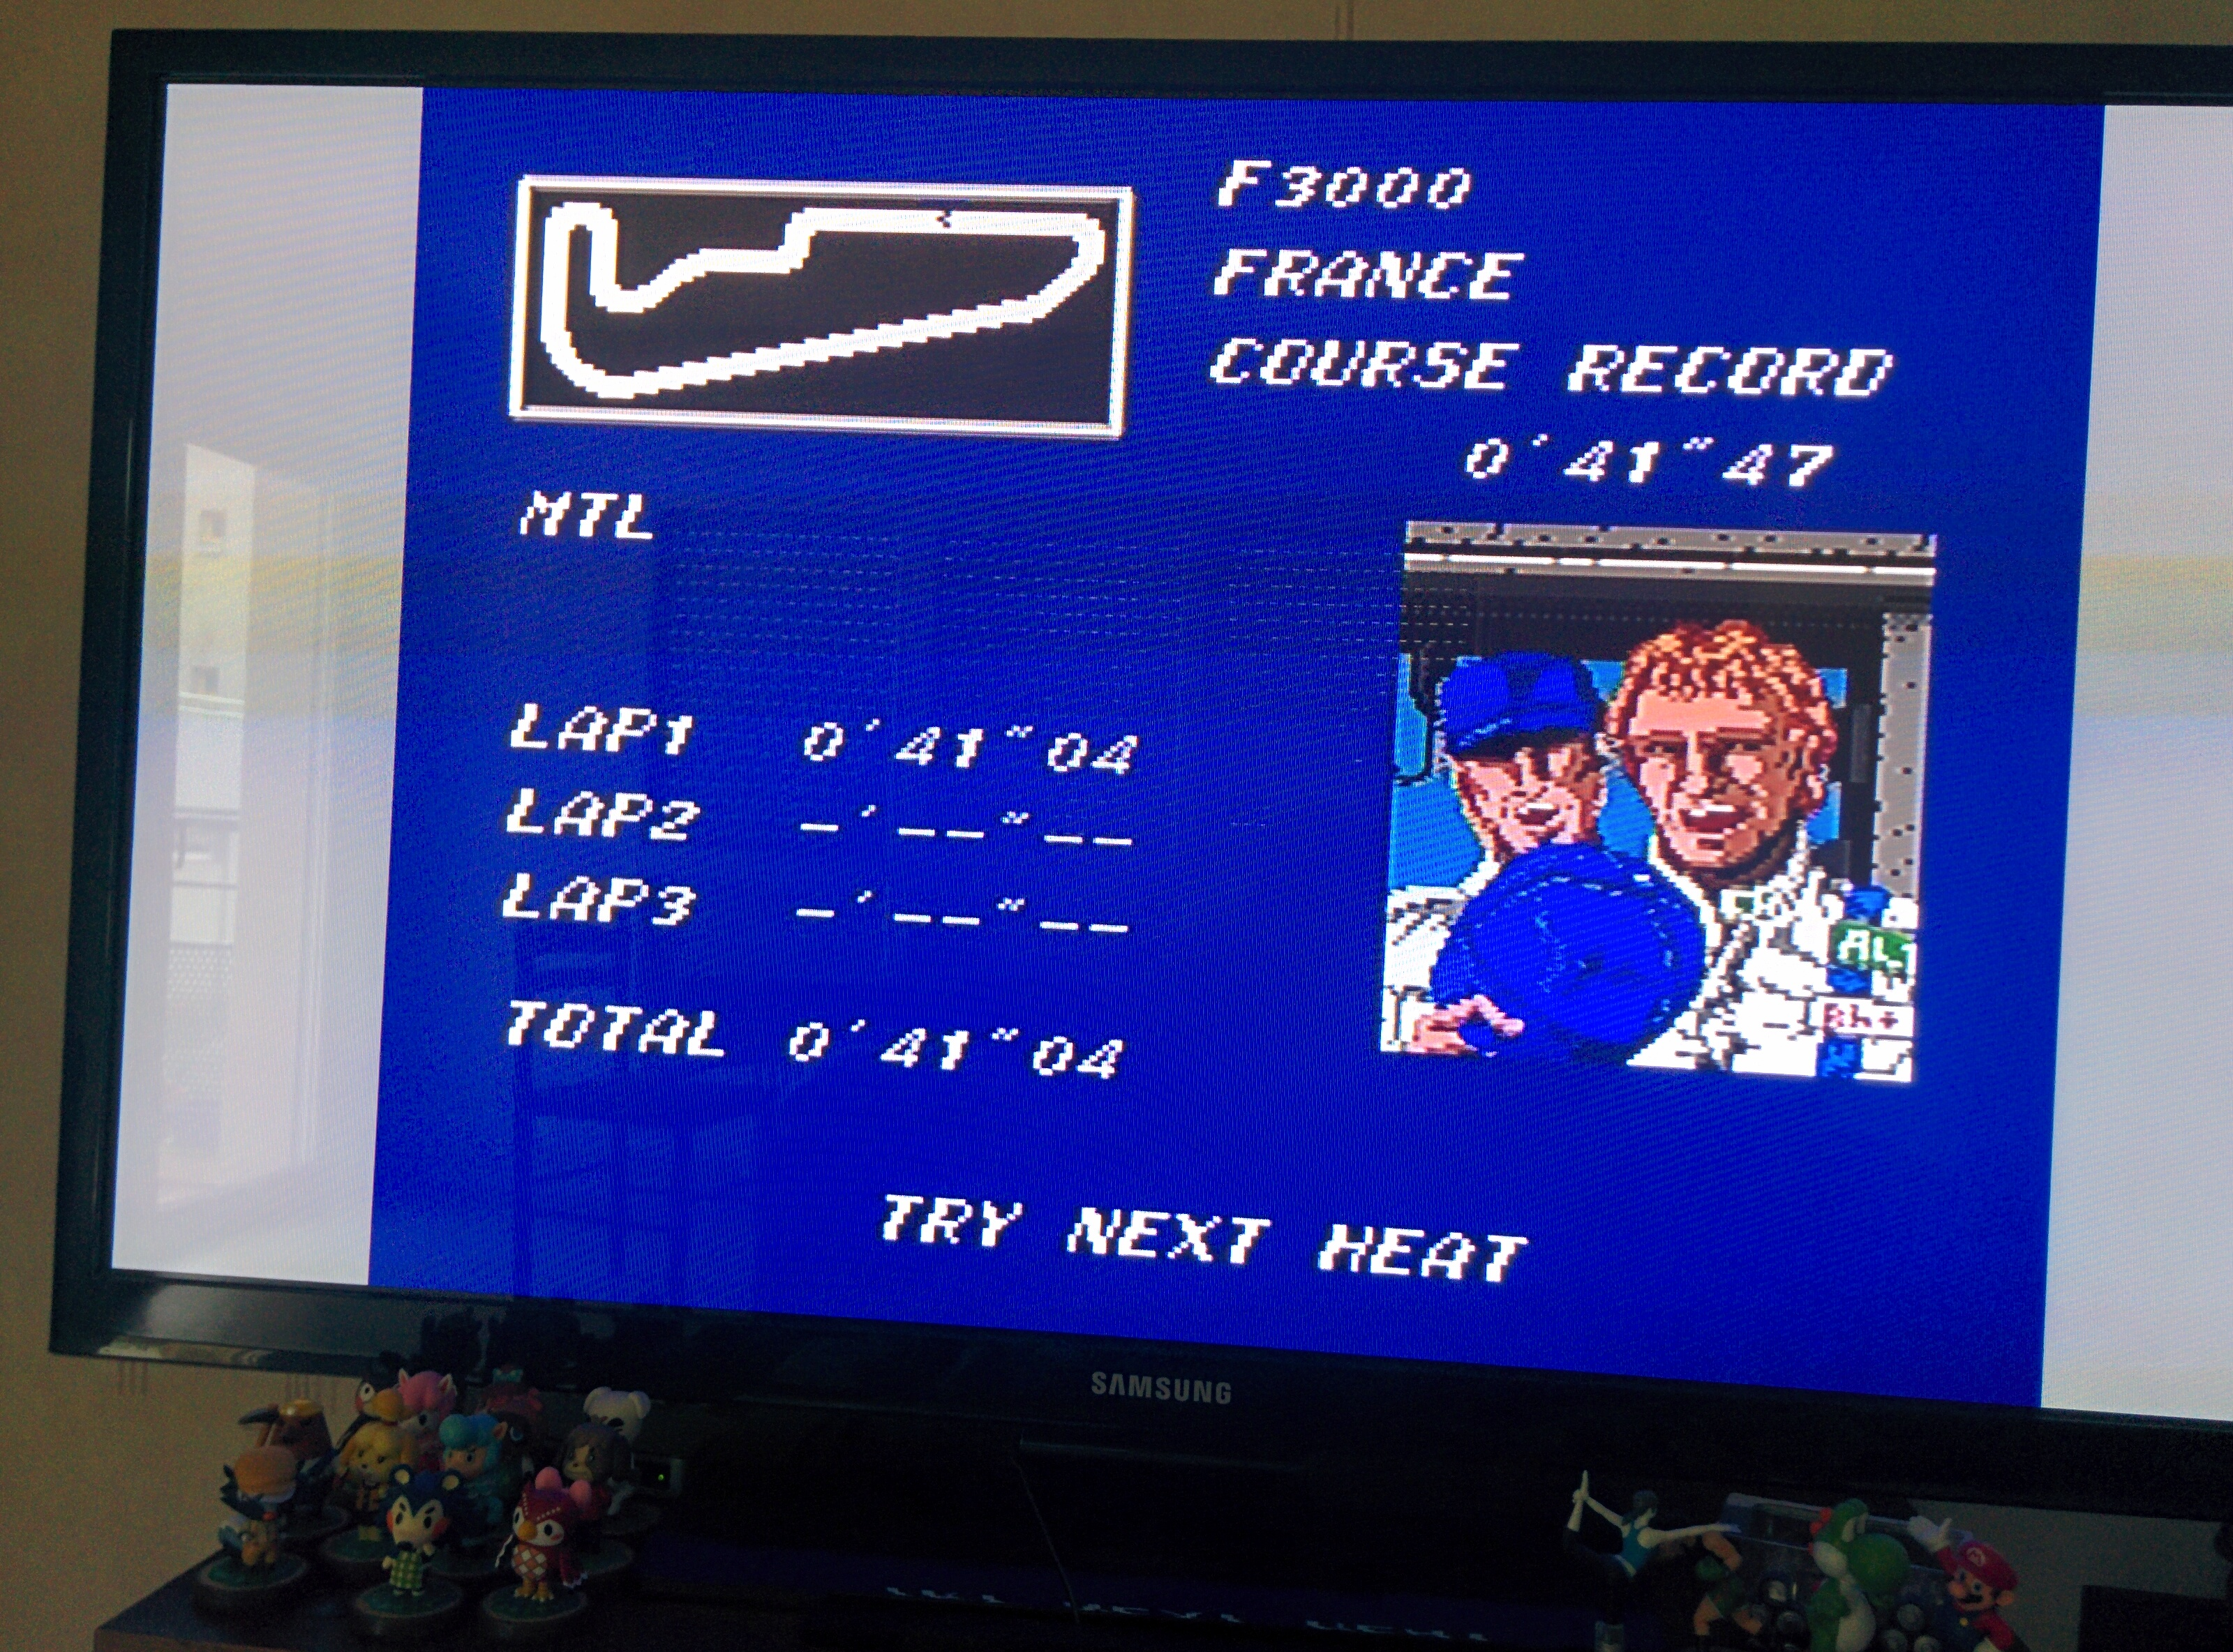 Mantalow: Final Lap Twin [Test/ 1 Lap/ F3000/ France] (TurboGrafx-16/PC Engine) 0:00:41.04 points on 2016-02-08 09:24:09